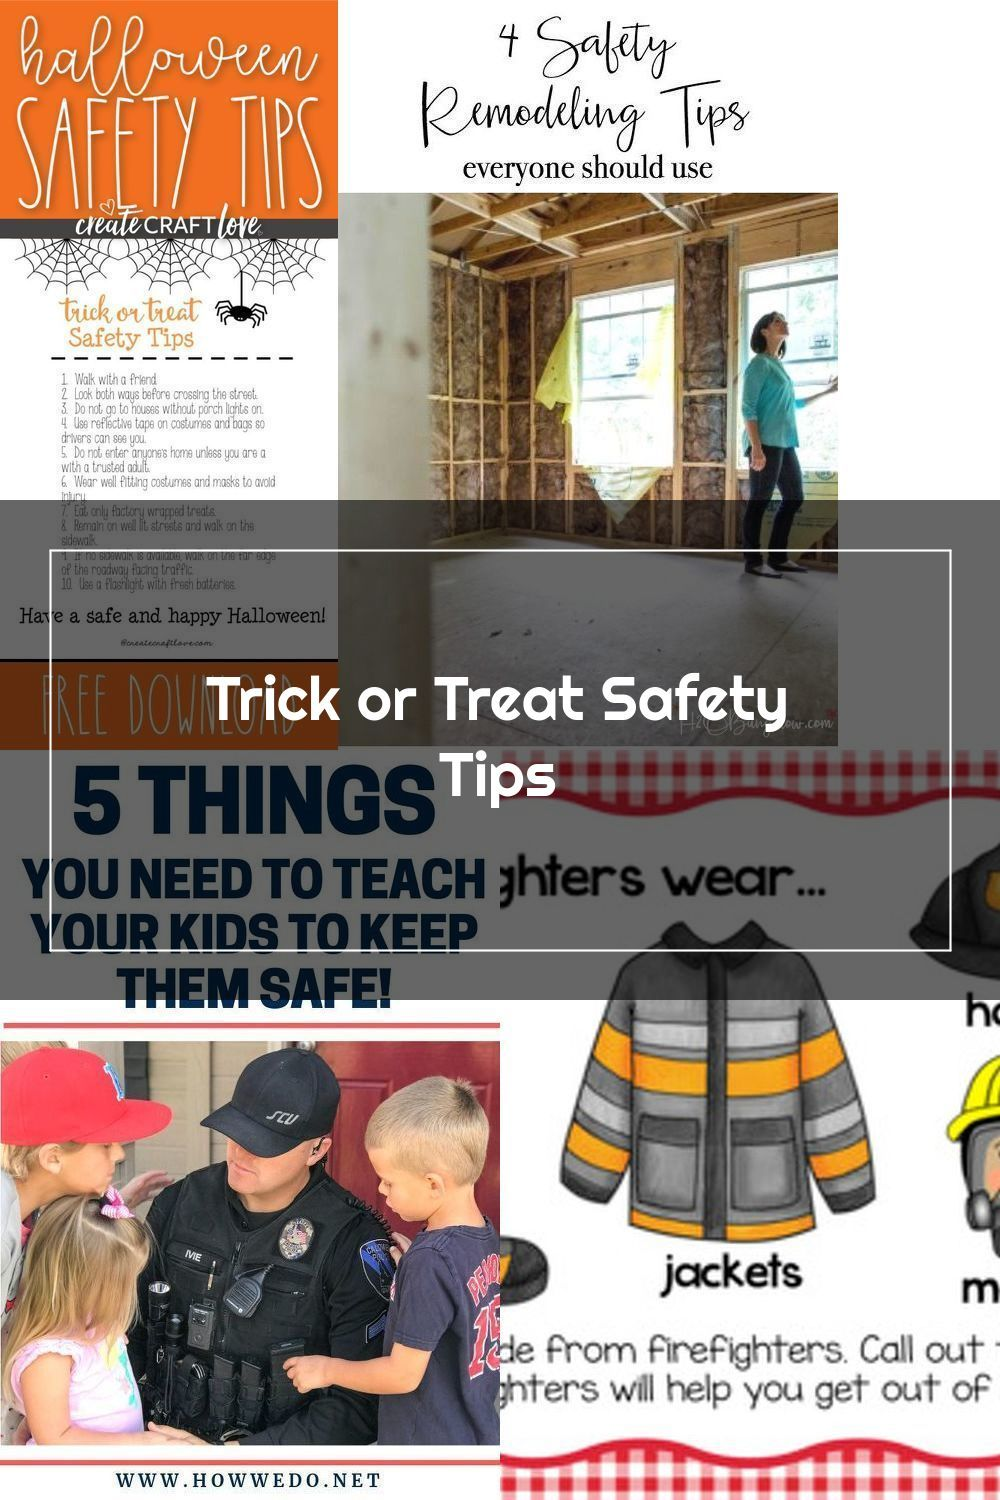 Review these Halloween Safety Tips to guarantee everyone